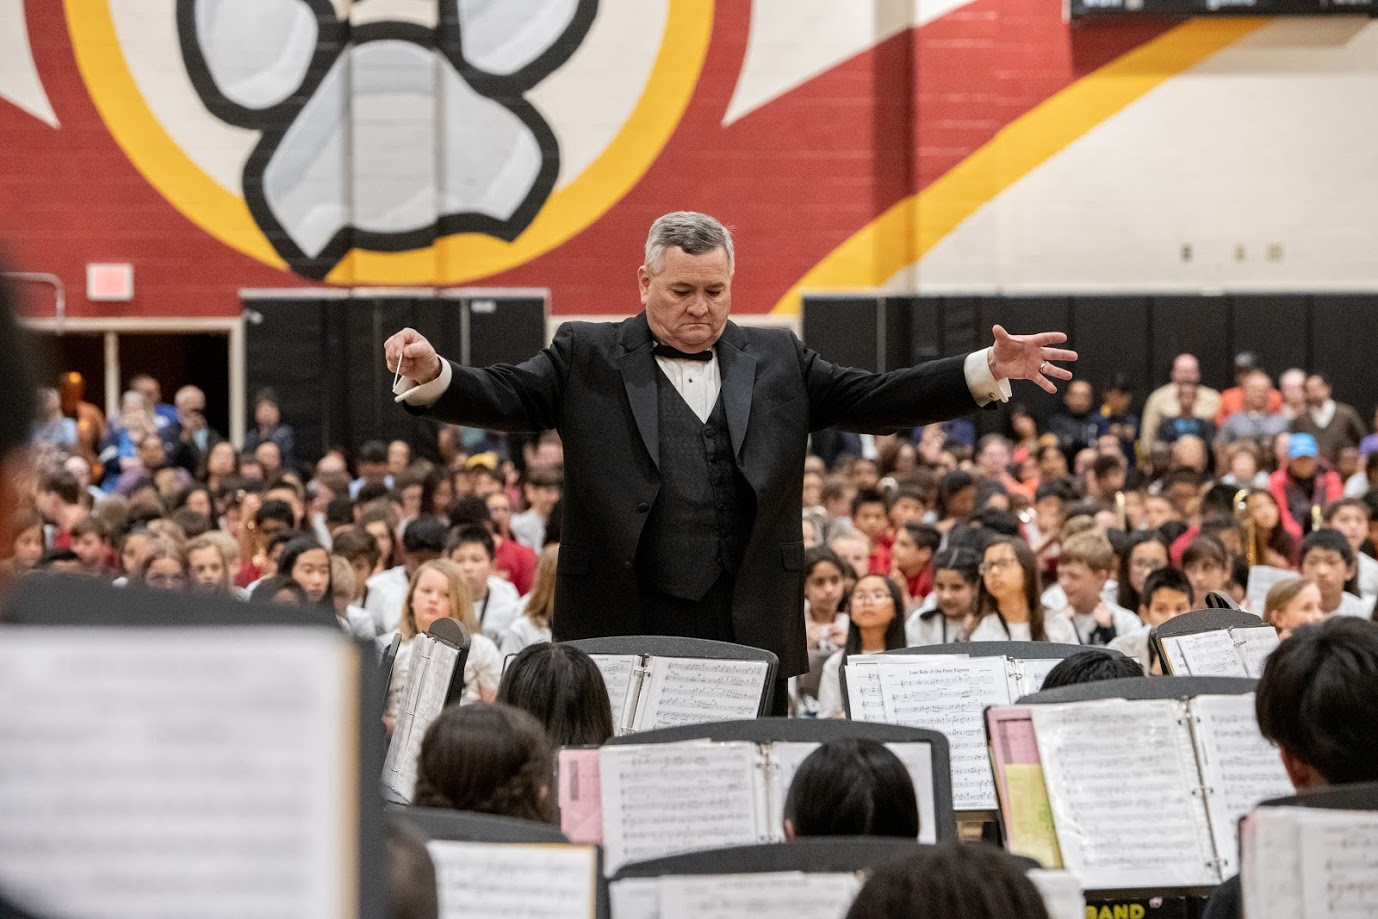 Mr.+Bonner+conducts+at+the+2019+Spring+Band+Concert.